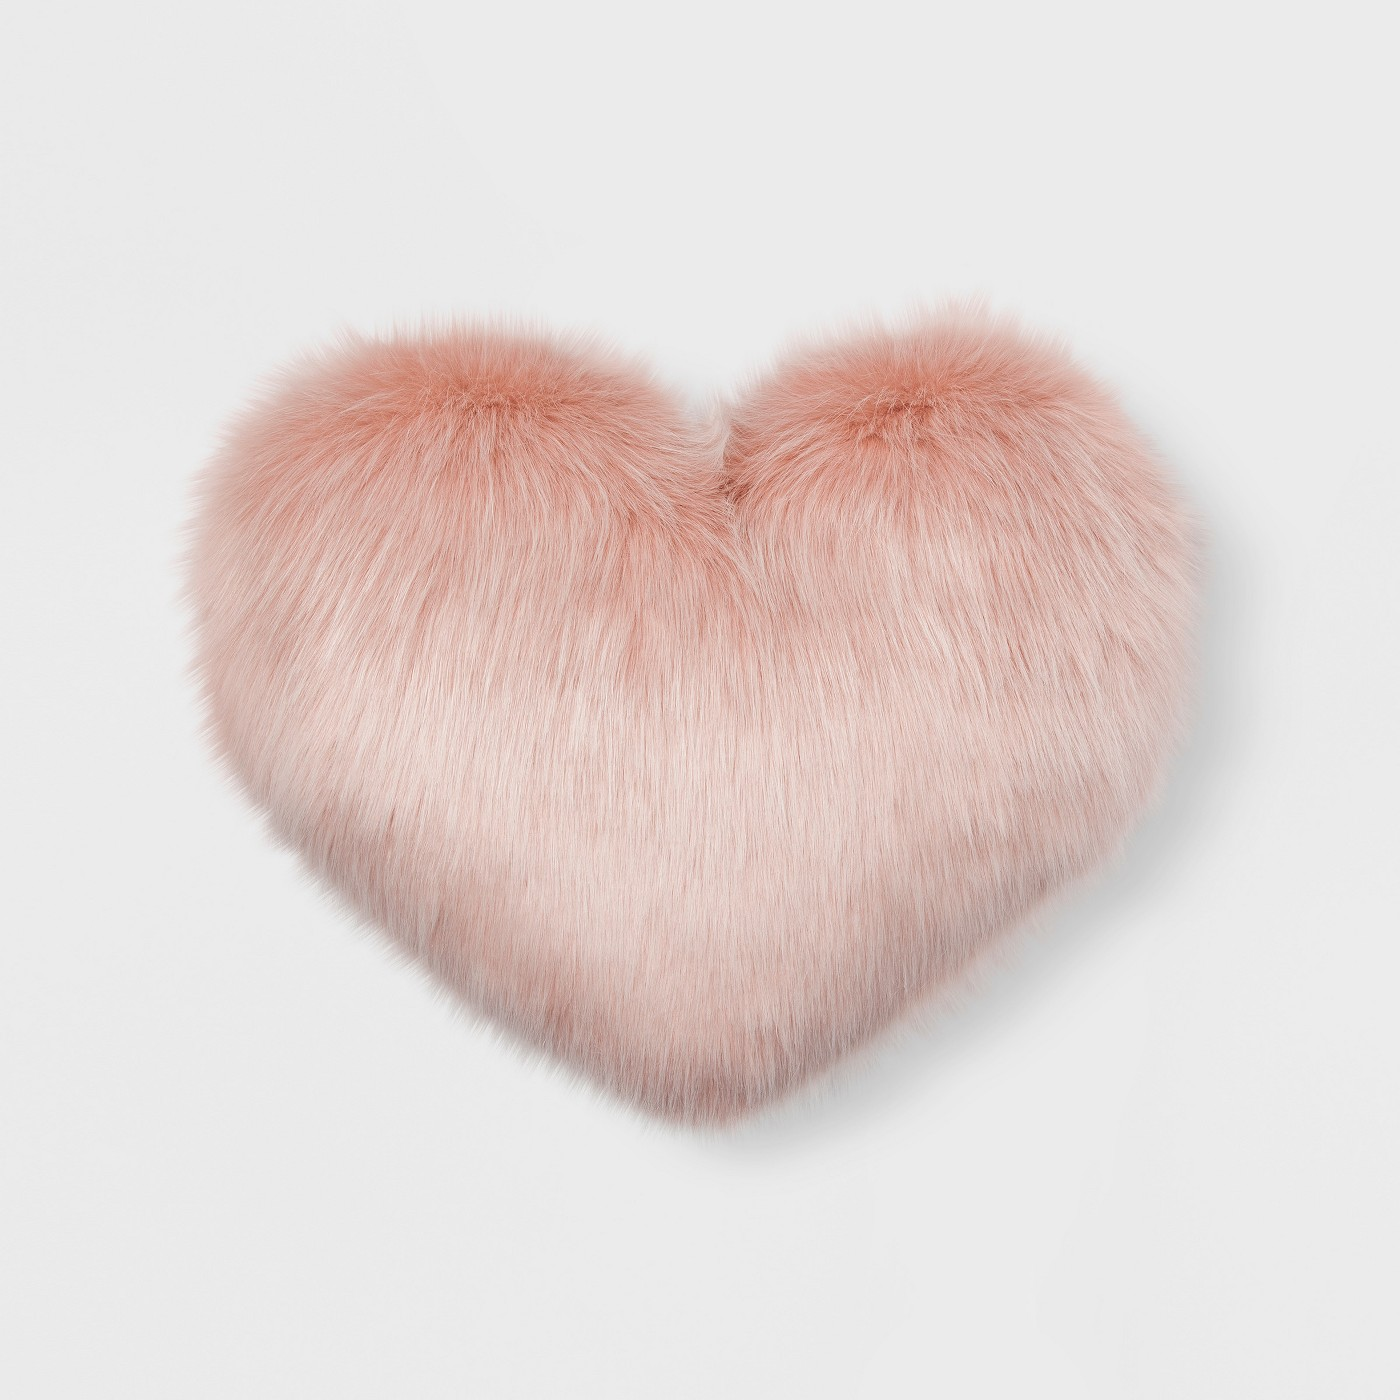 Faux Fur Oversized Heart Throw Pillow - image 1 of 2